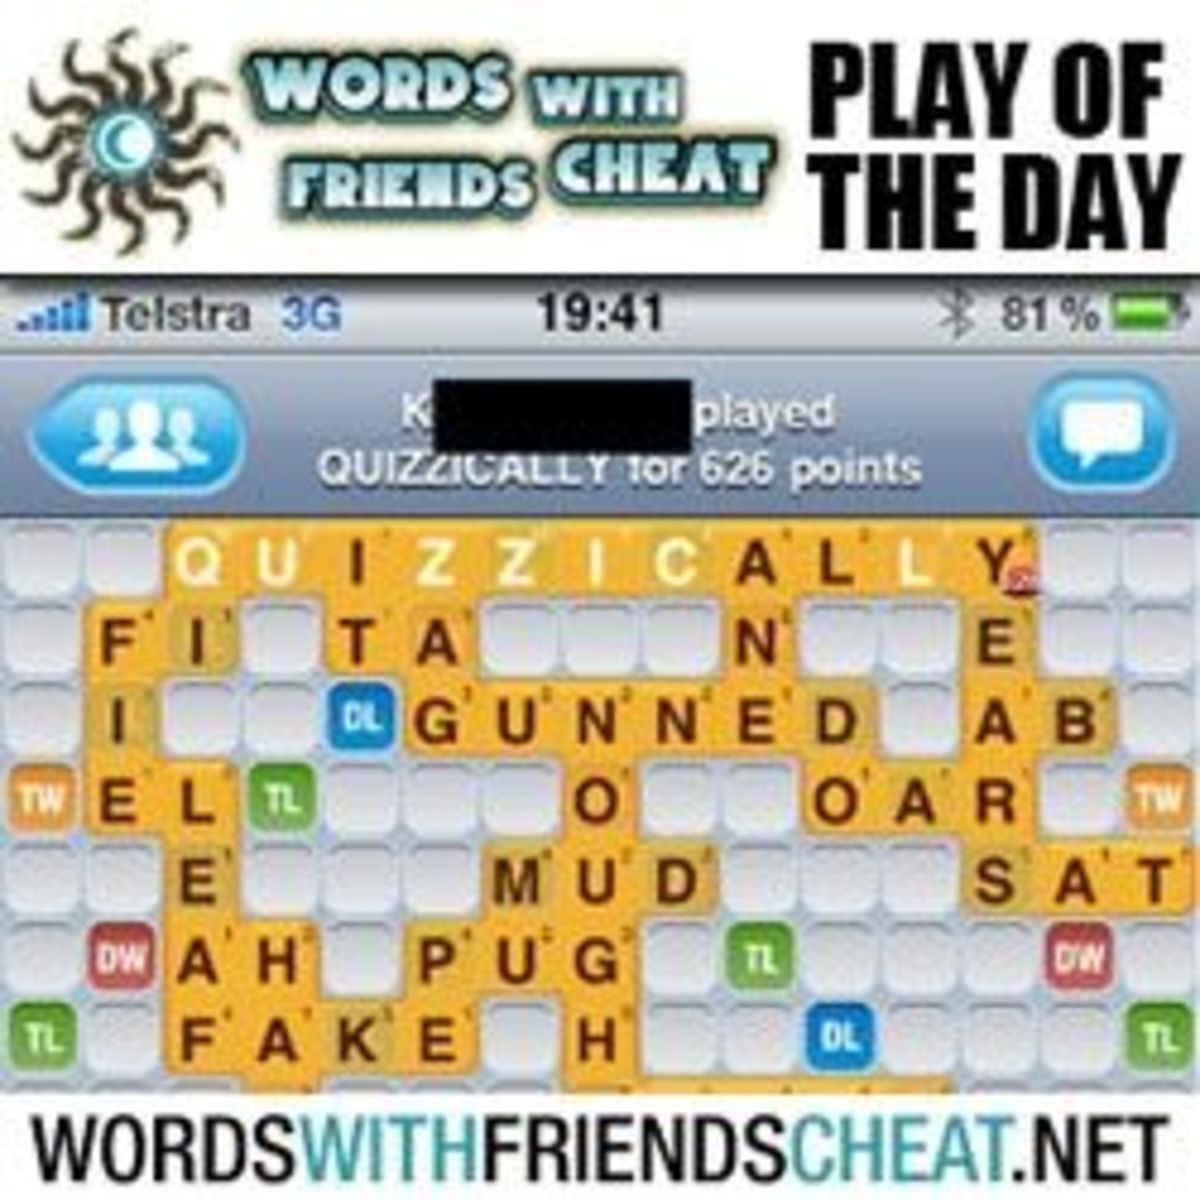 Cheat With Friends